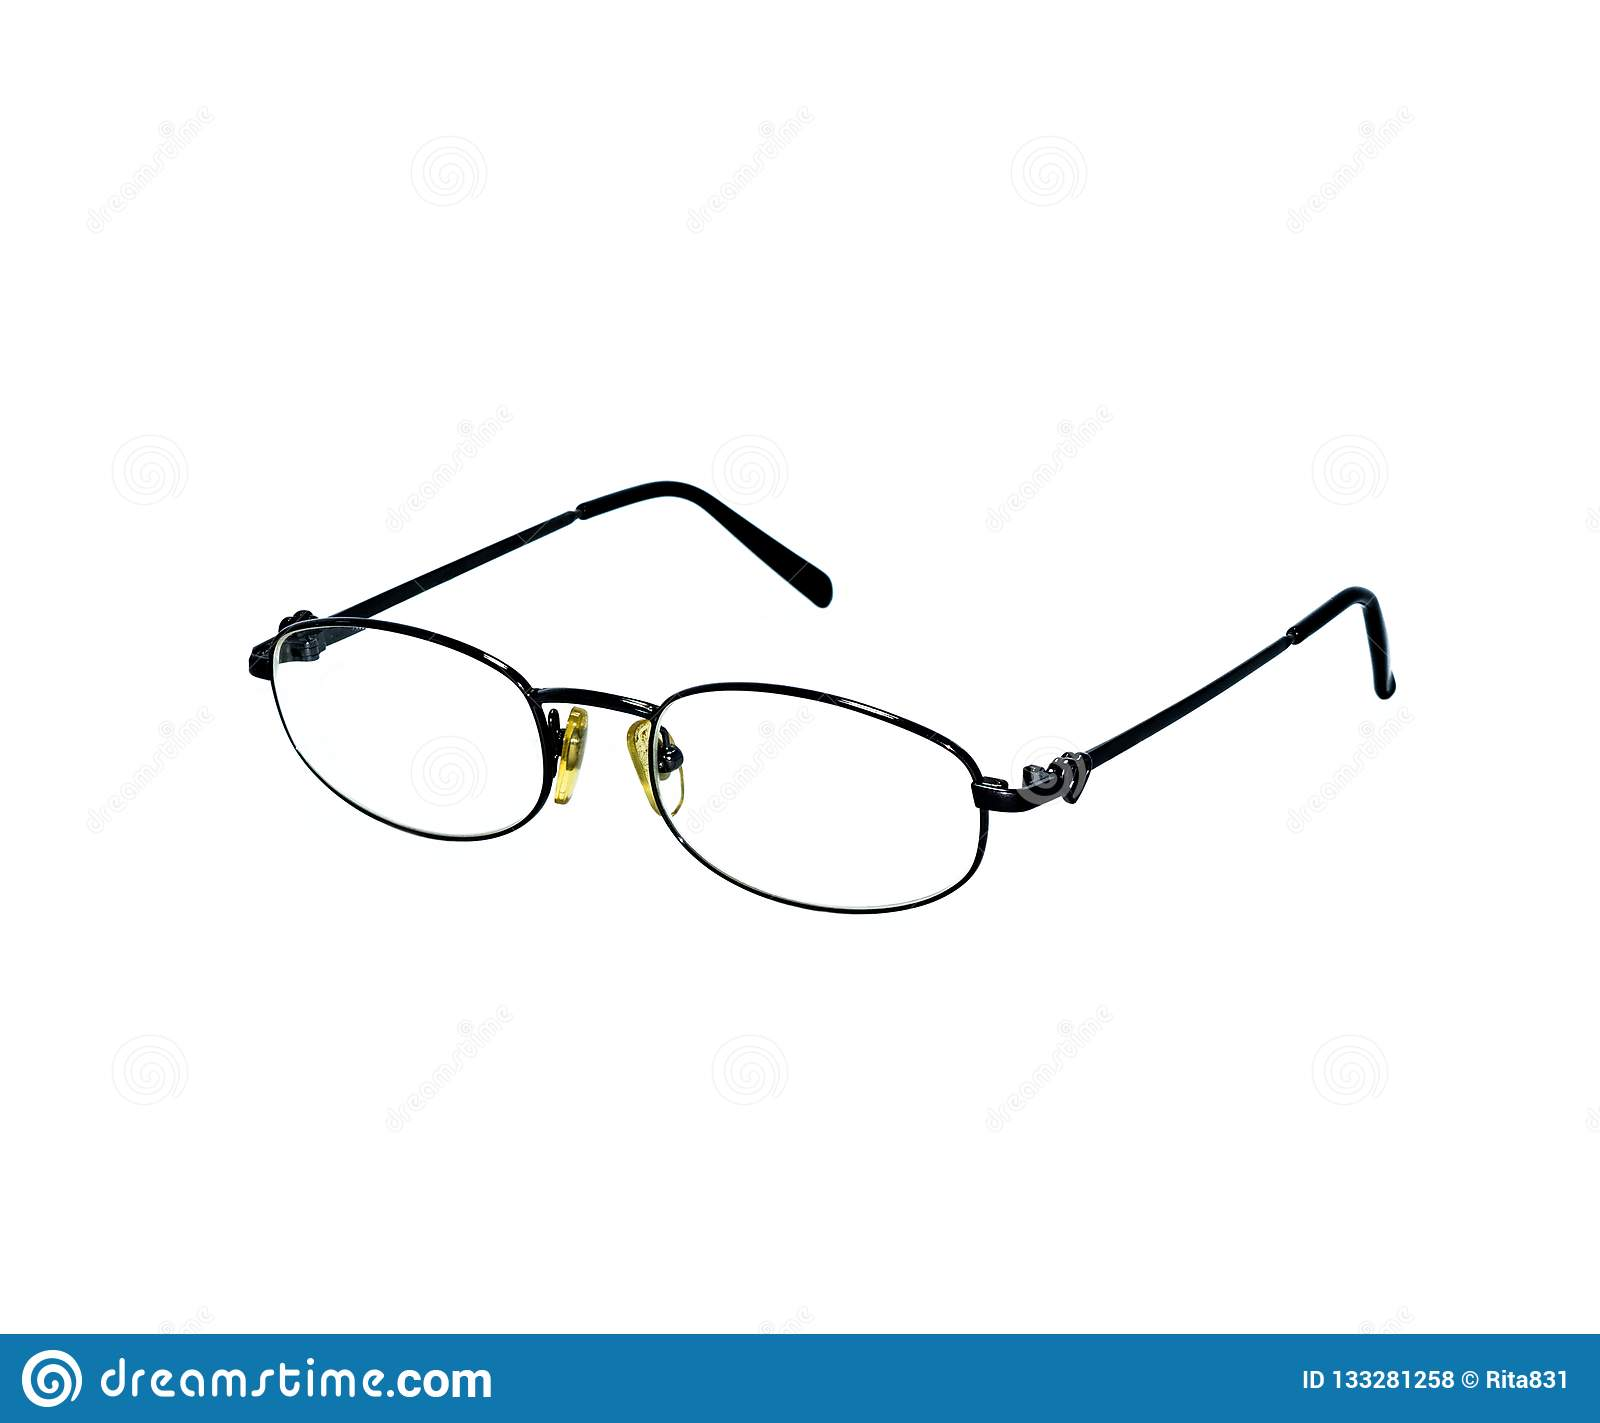 04e4bfce61 Metal Black Glasses In Thin Frame Isolated On White Background Stock ...